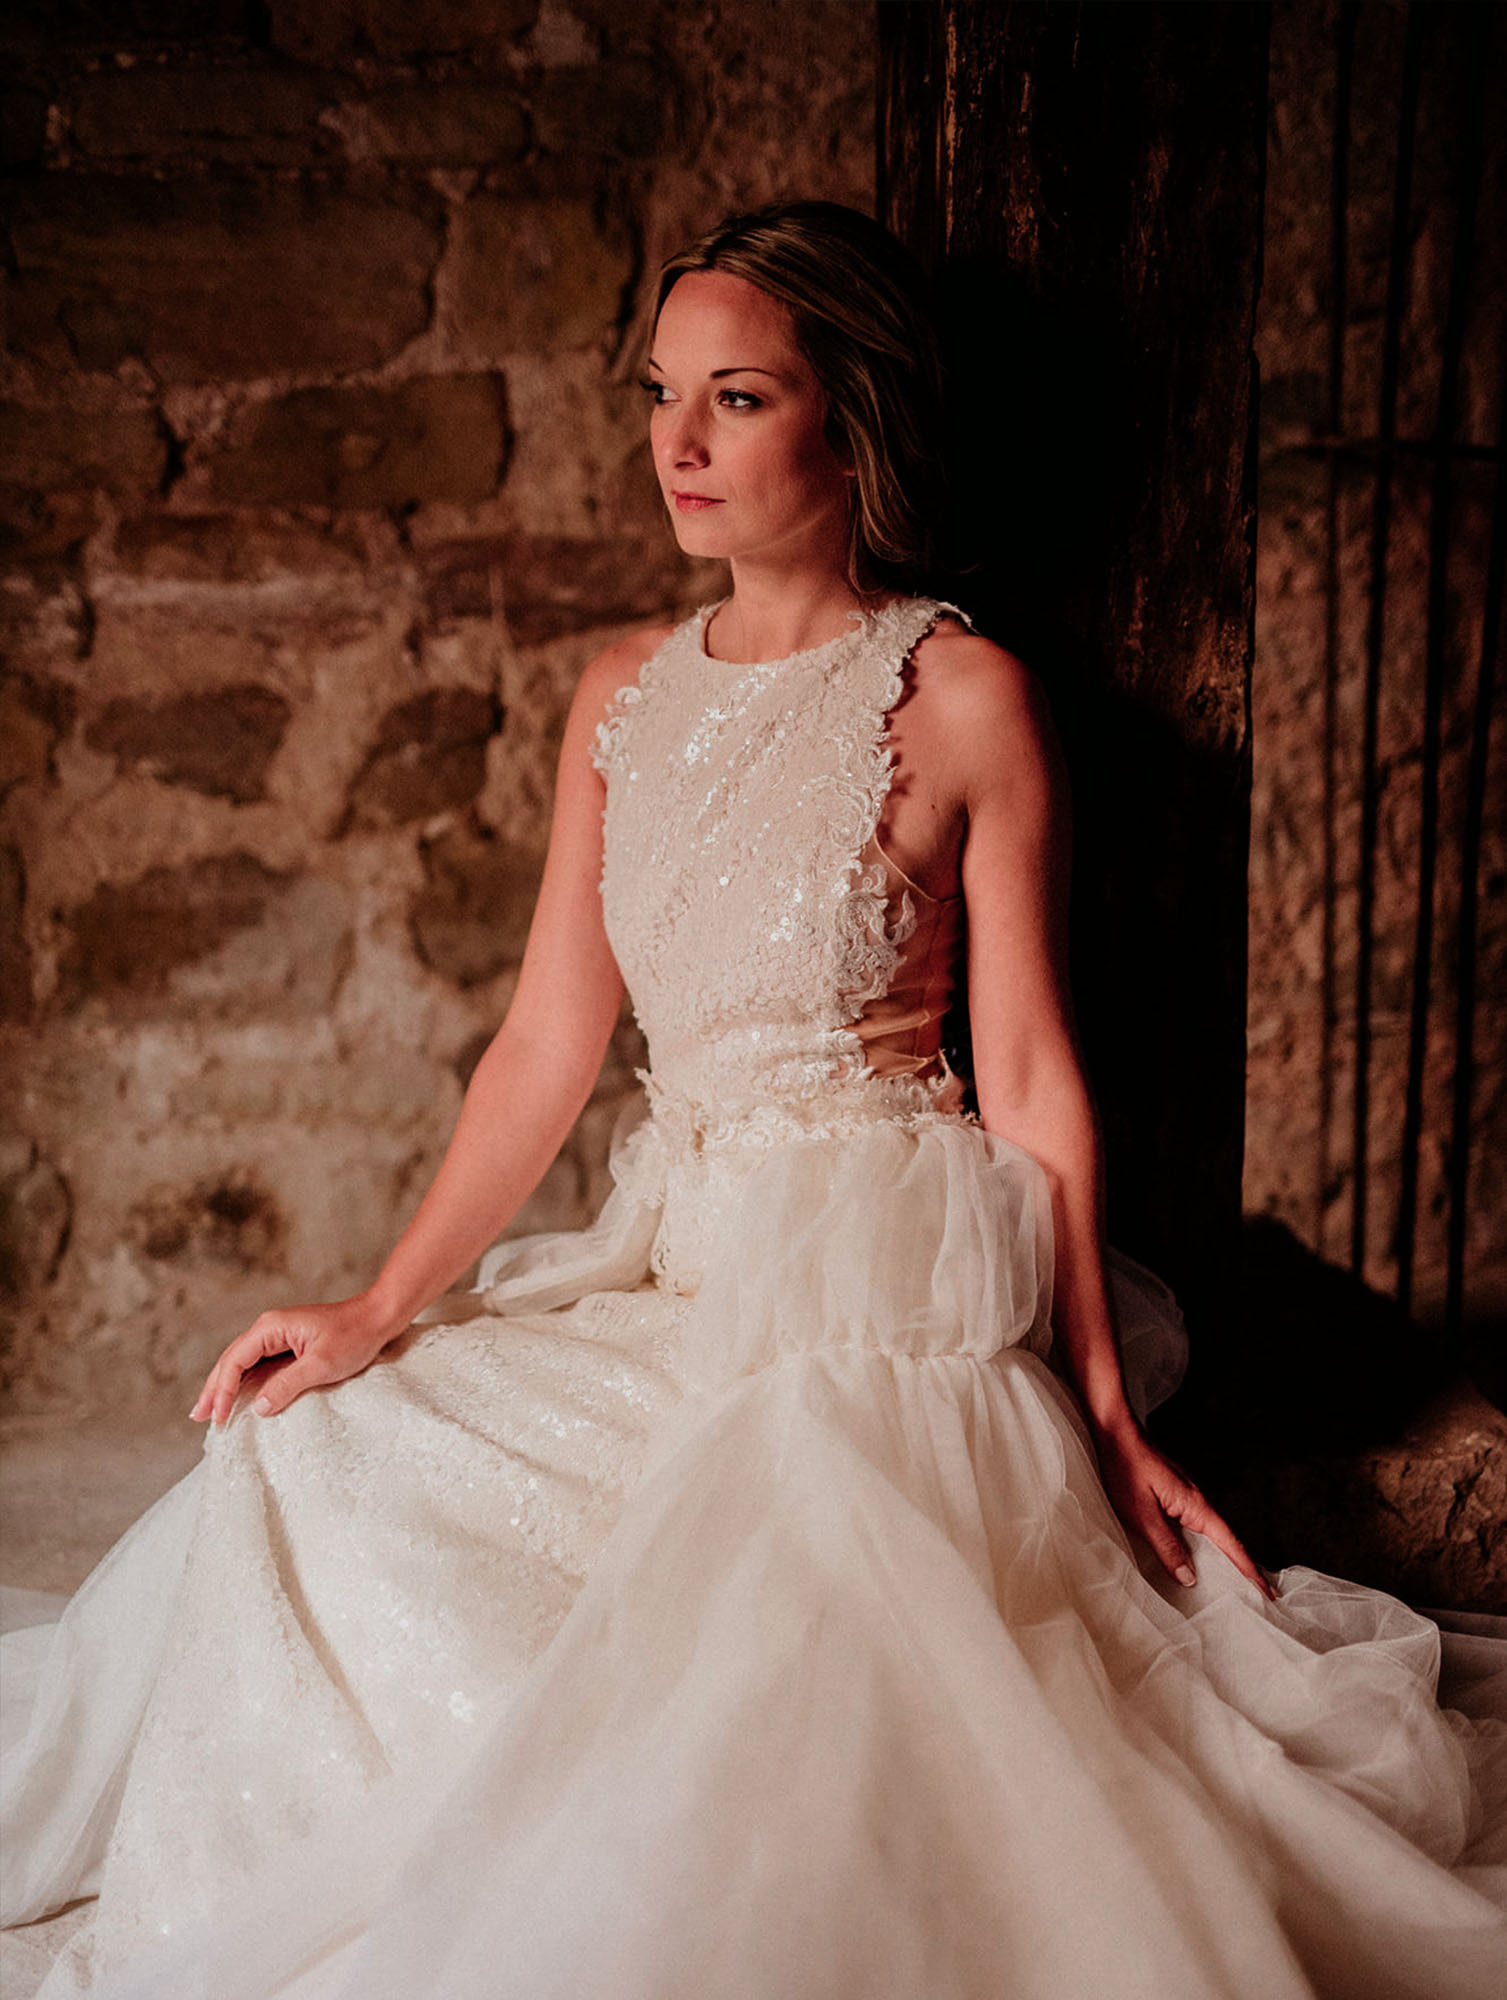 Lidia-Event-Wedding-Boda-Boutique-Novia.jpg